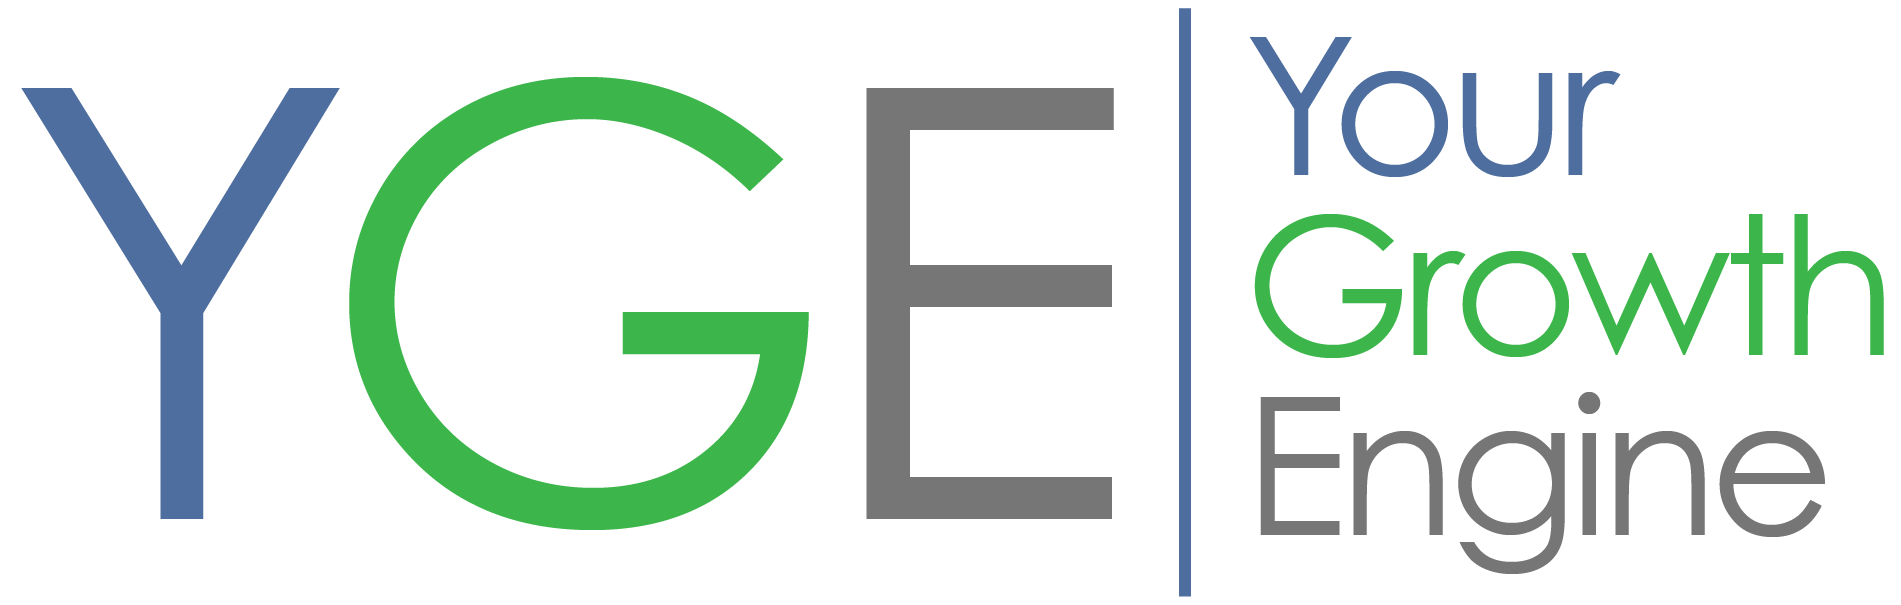 Your Growth Engine Logo